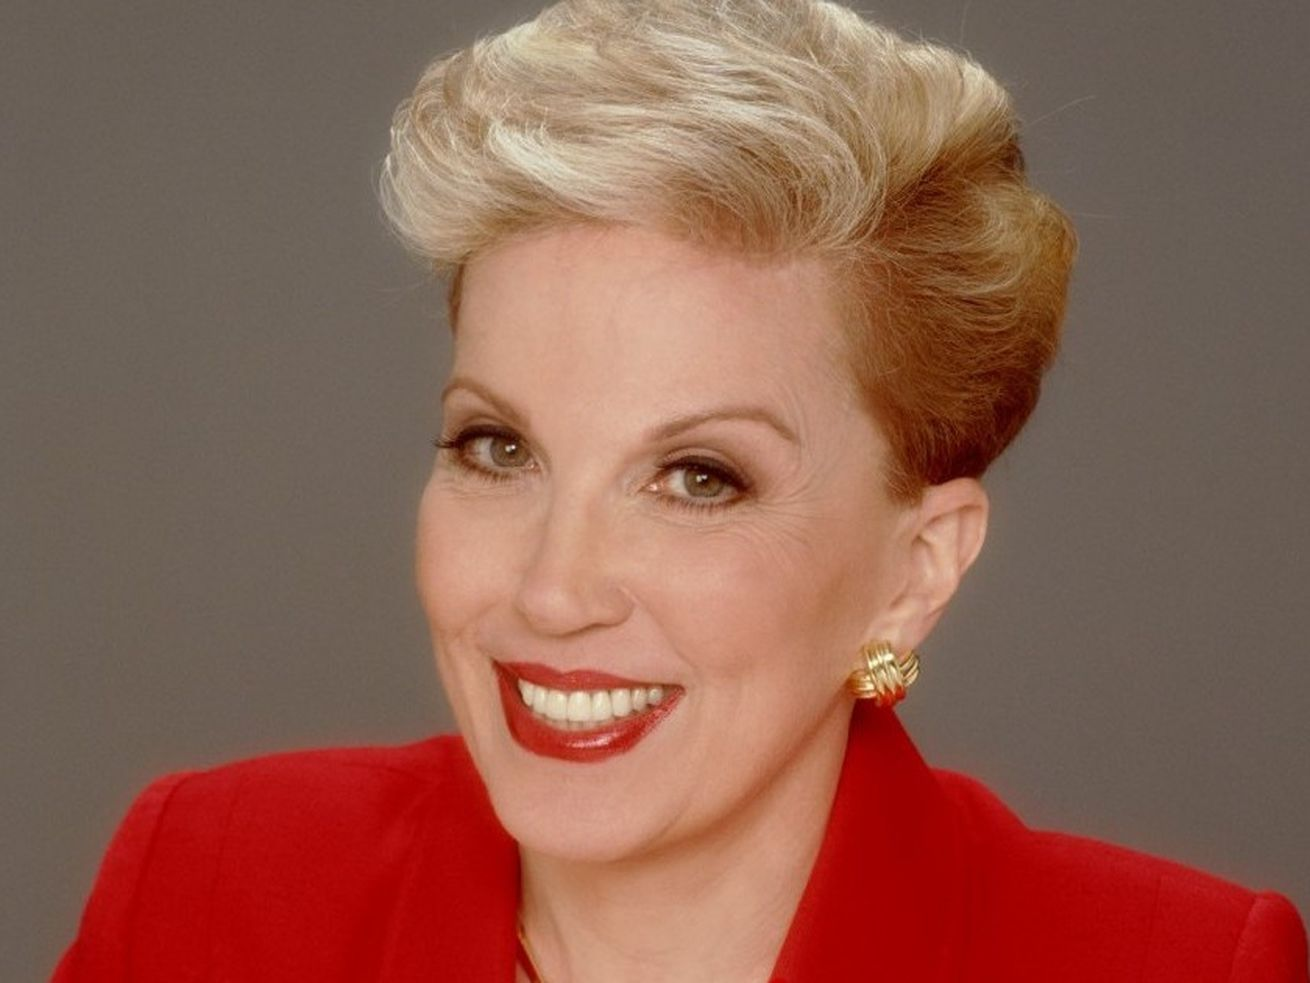 Dear Abby: My friend sounds horrible when she scorns overweight people